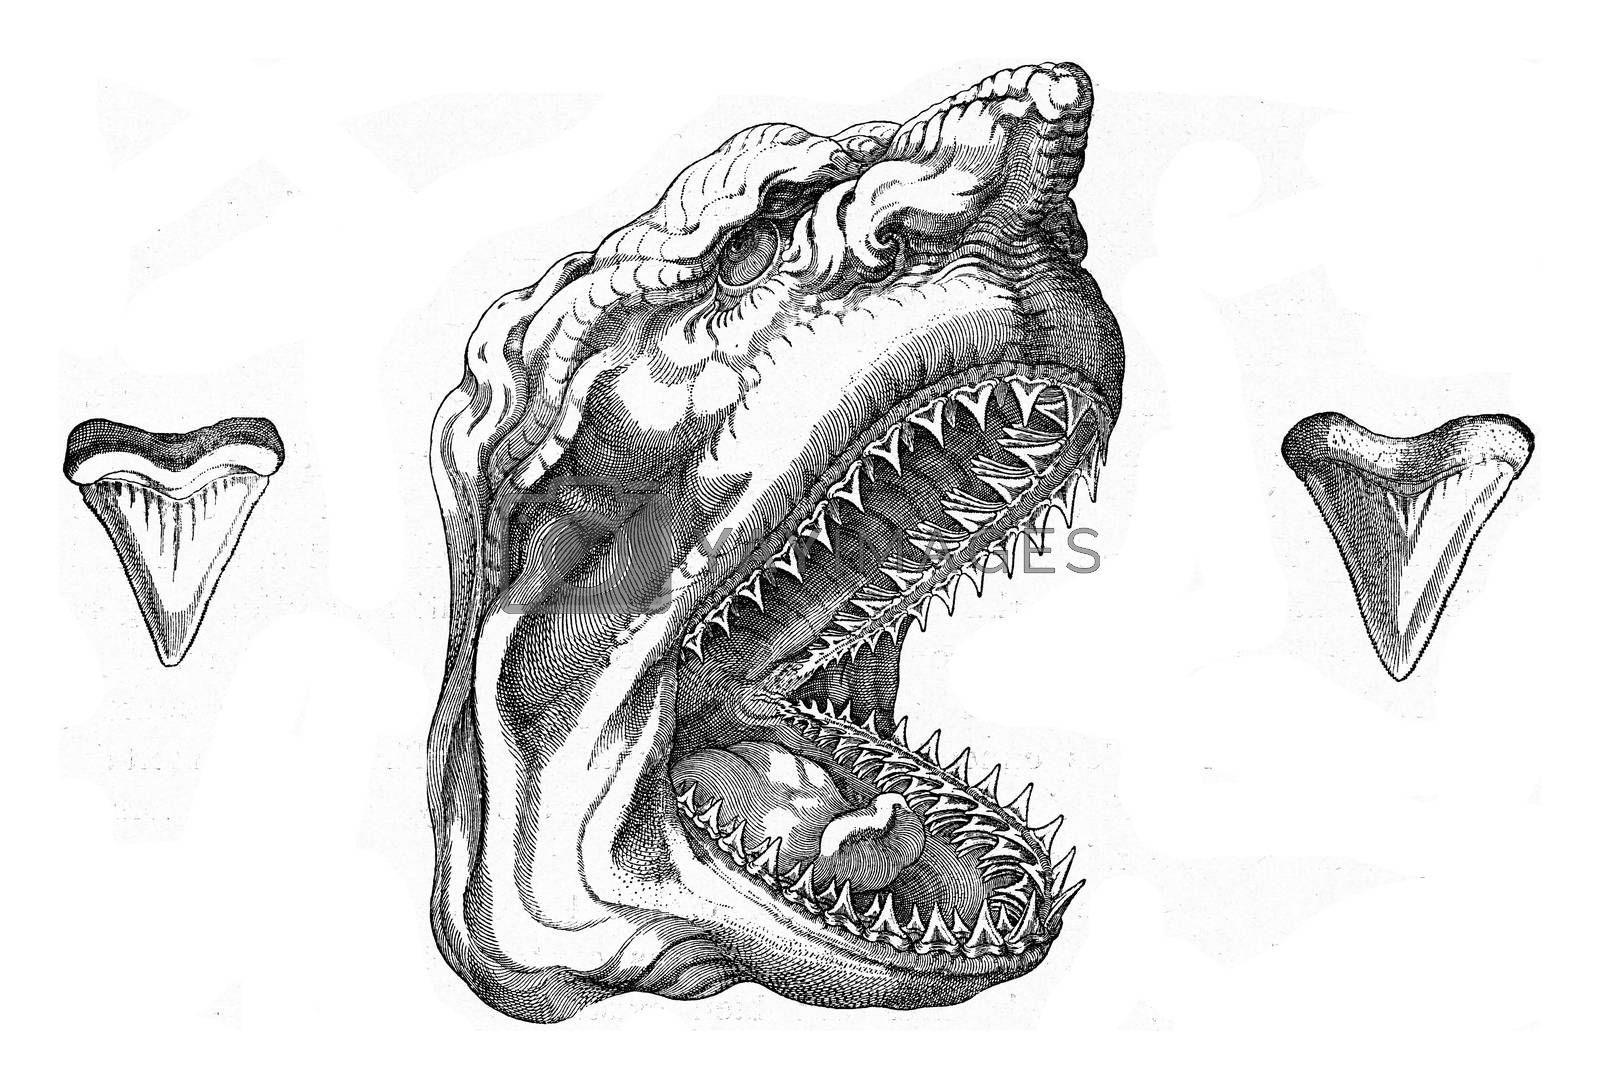 Royalty free image of Old reproduction of a shark's head, vintage engraving. by Morphart